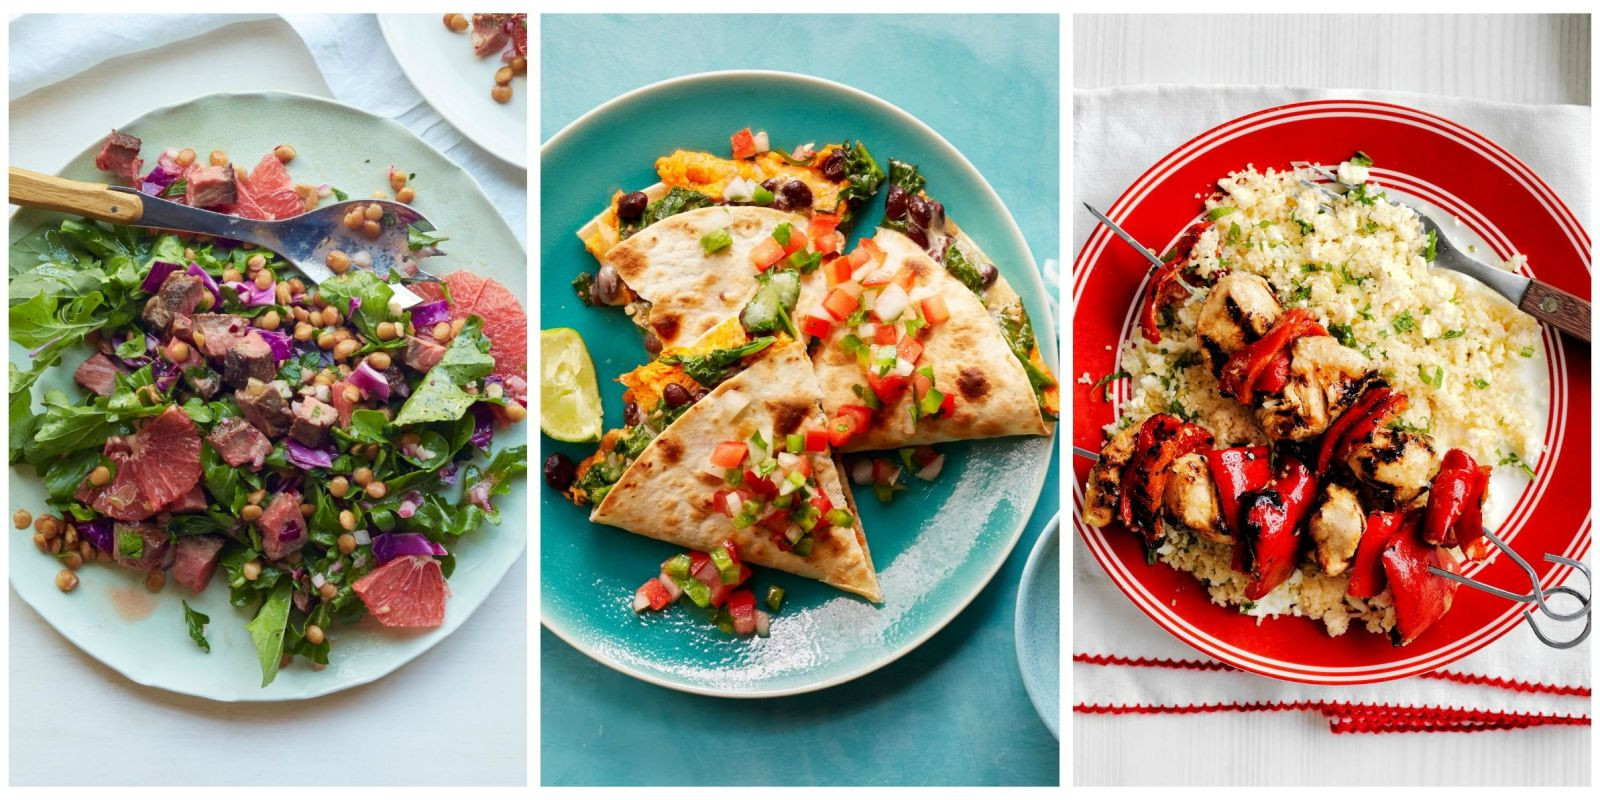 Good Healthy Dinners  55 Heart Healthy Dinner Recipes That Don t Taste Like Diet